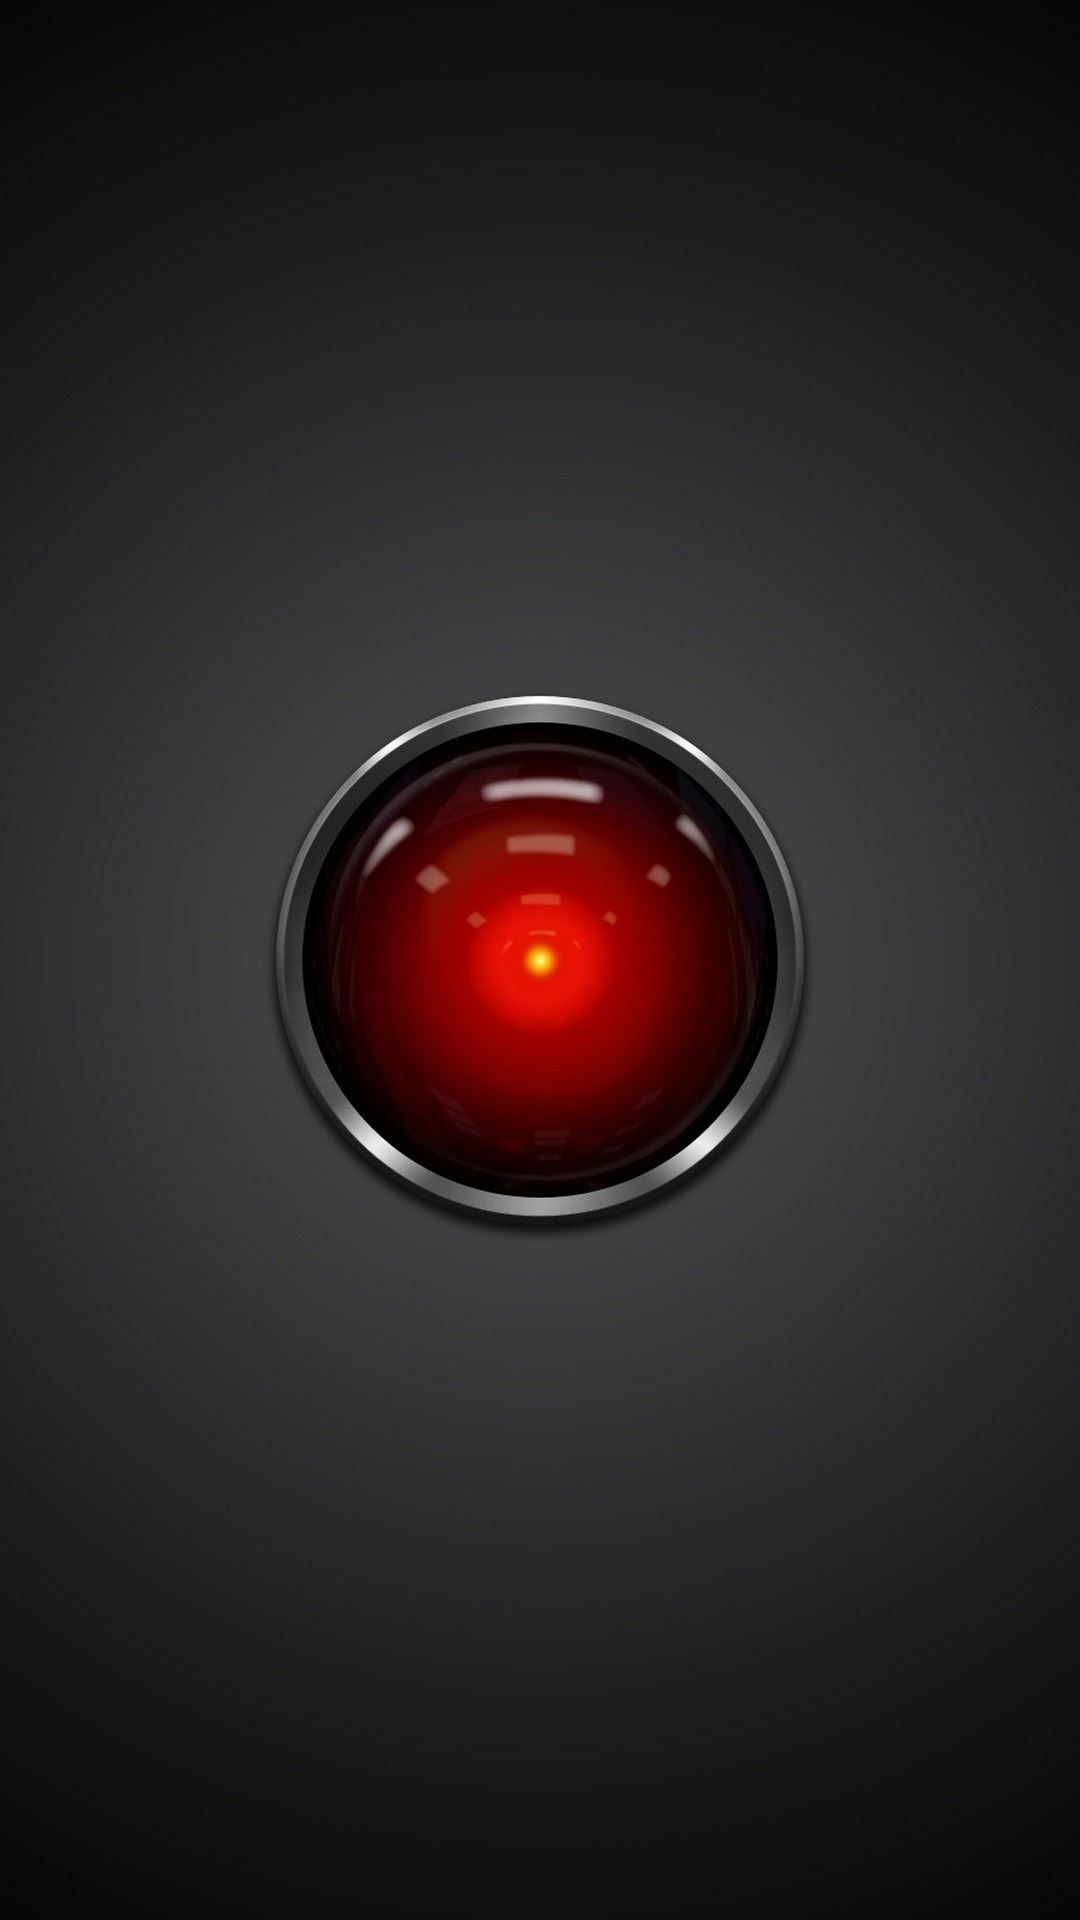 Android Wallpaper Hal 9000